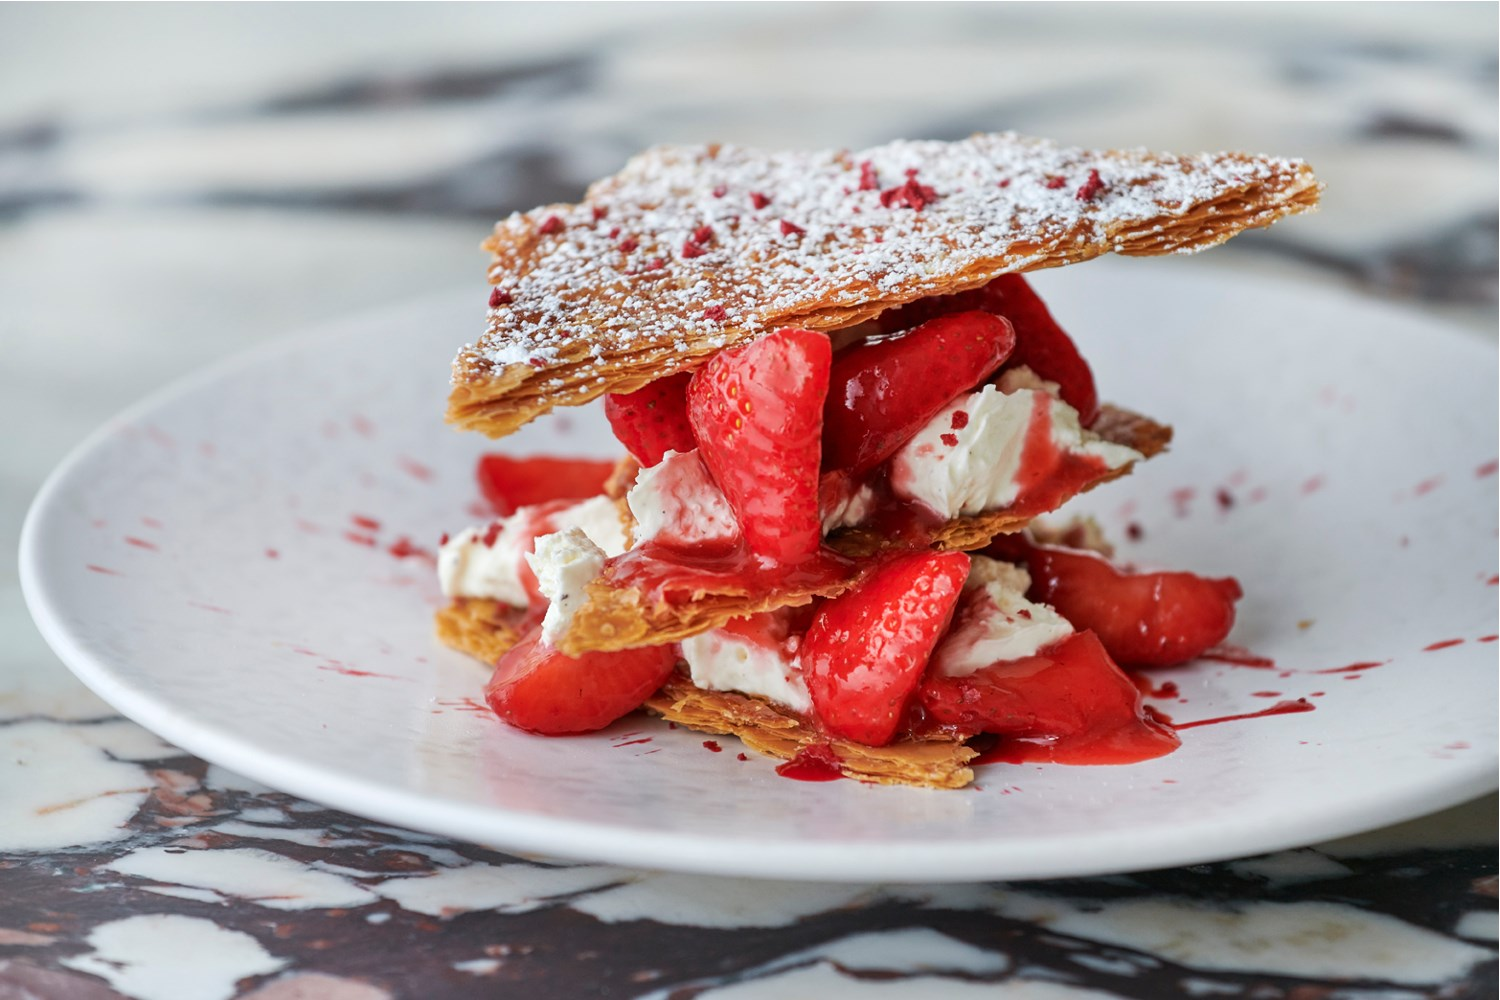 Daphne's Strawberry & mascarpone millefoglie